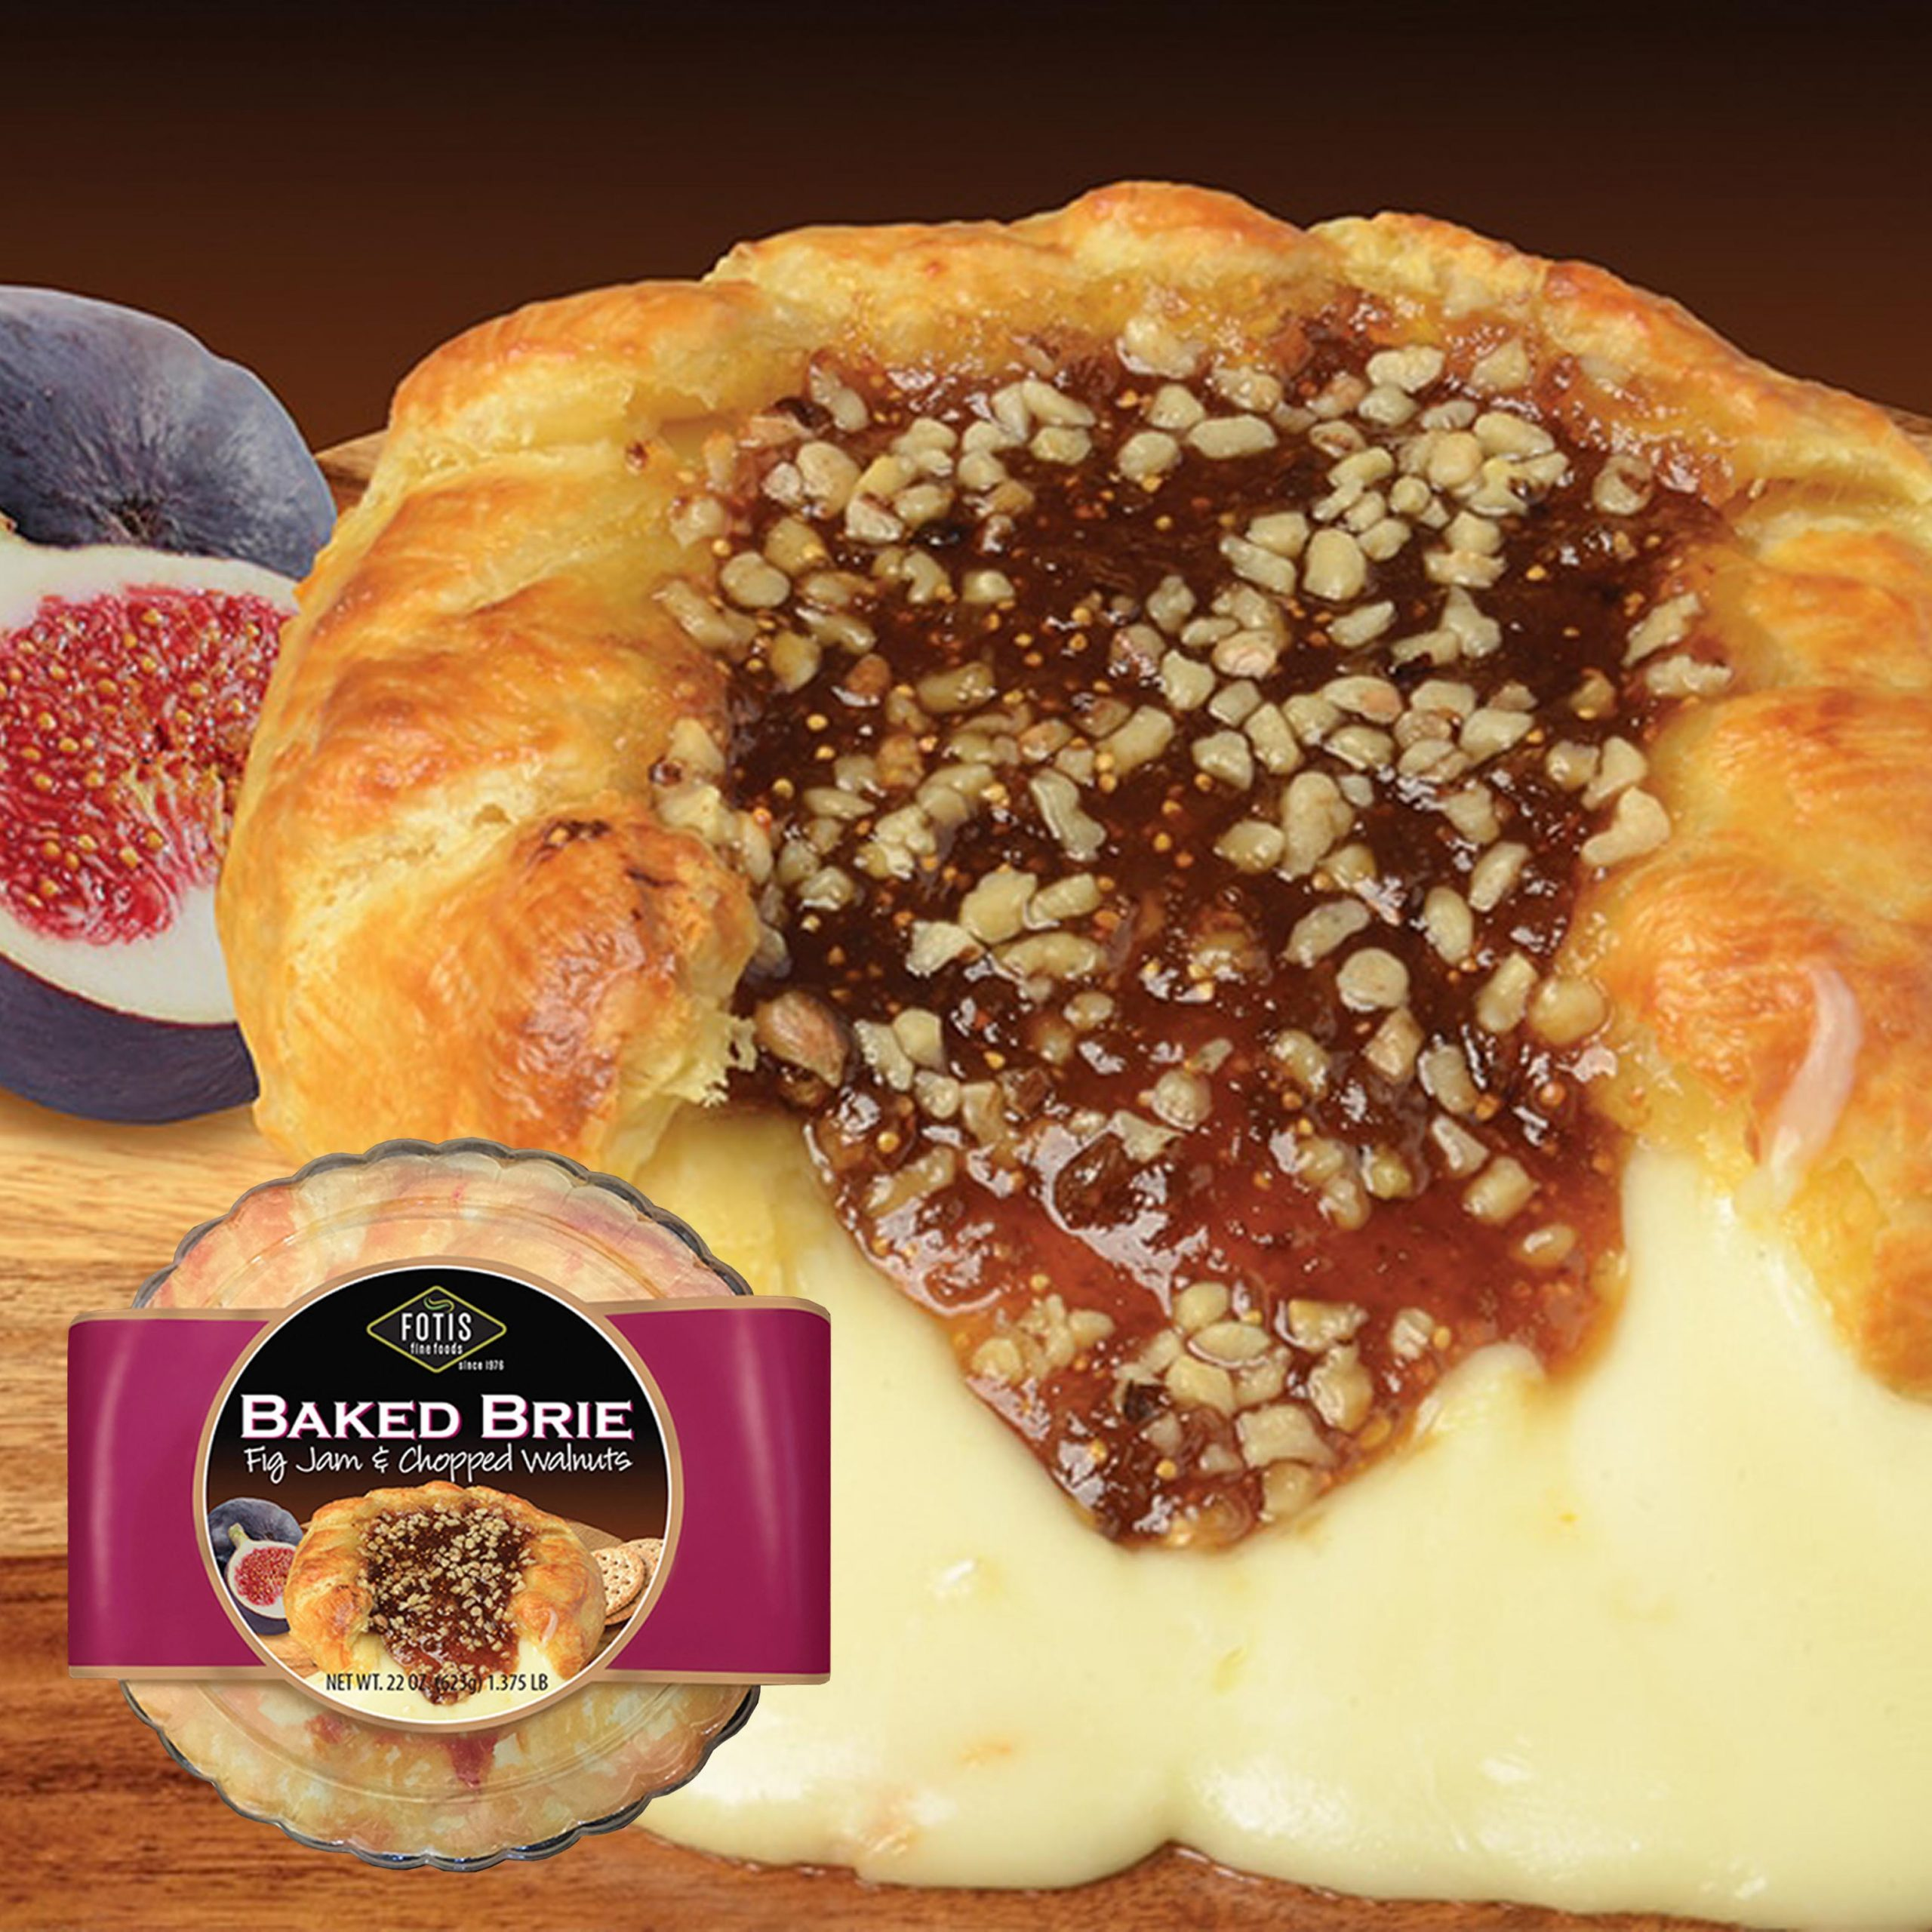 Fotis Baked Brie with Fig Jam & Chopped Walnuts Feature